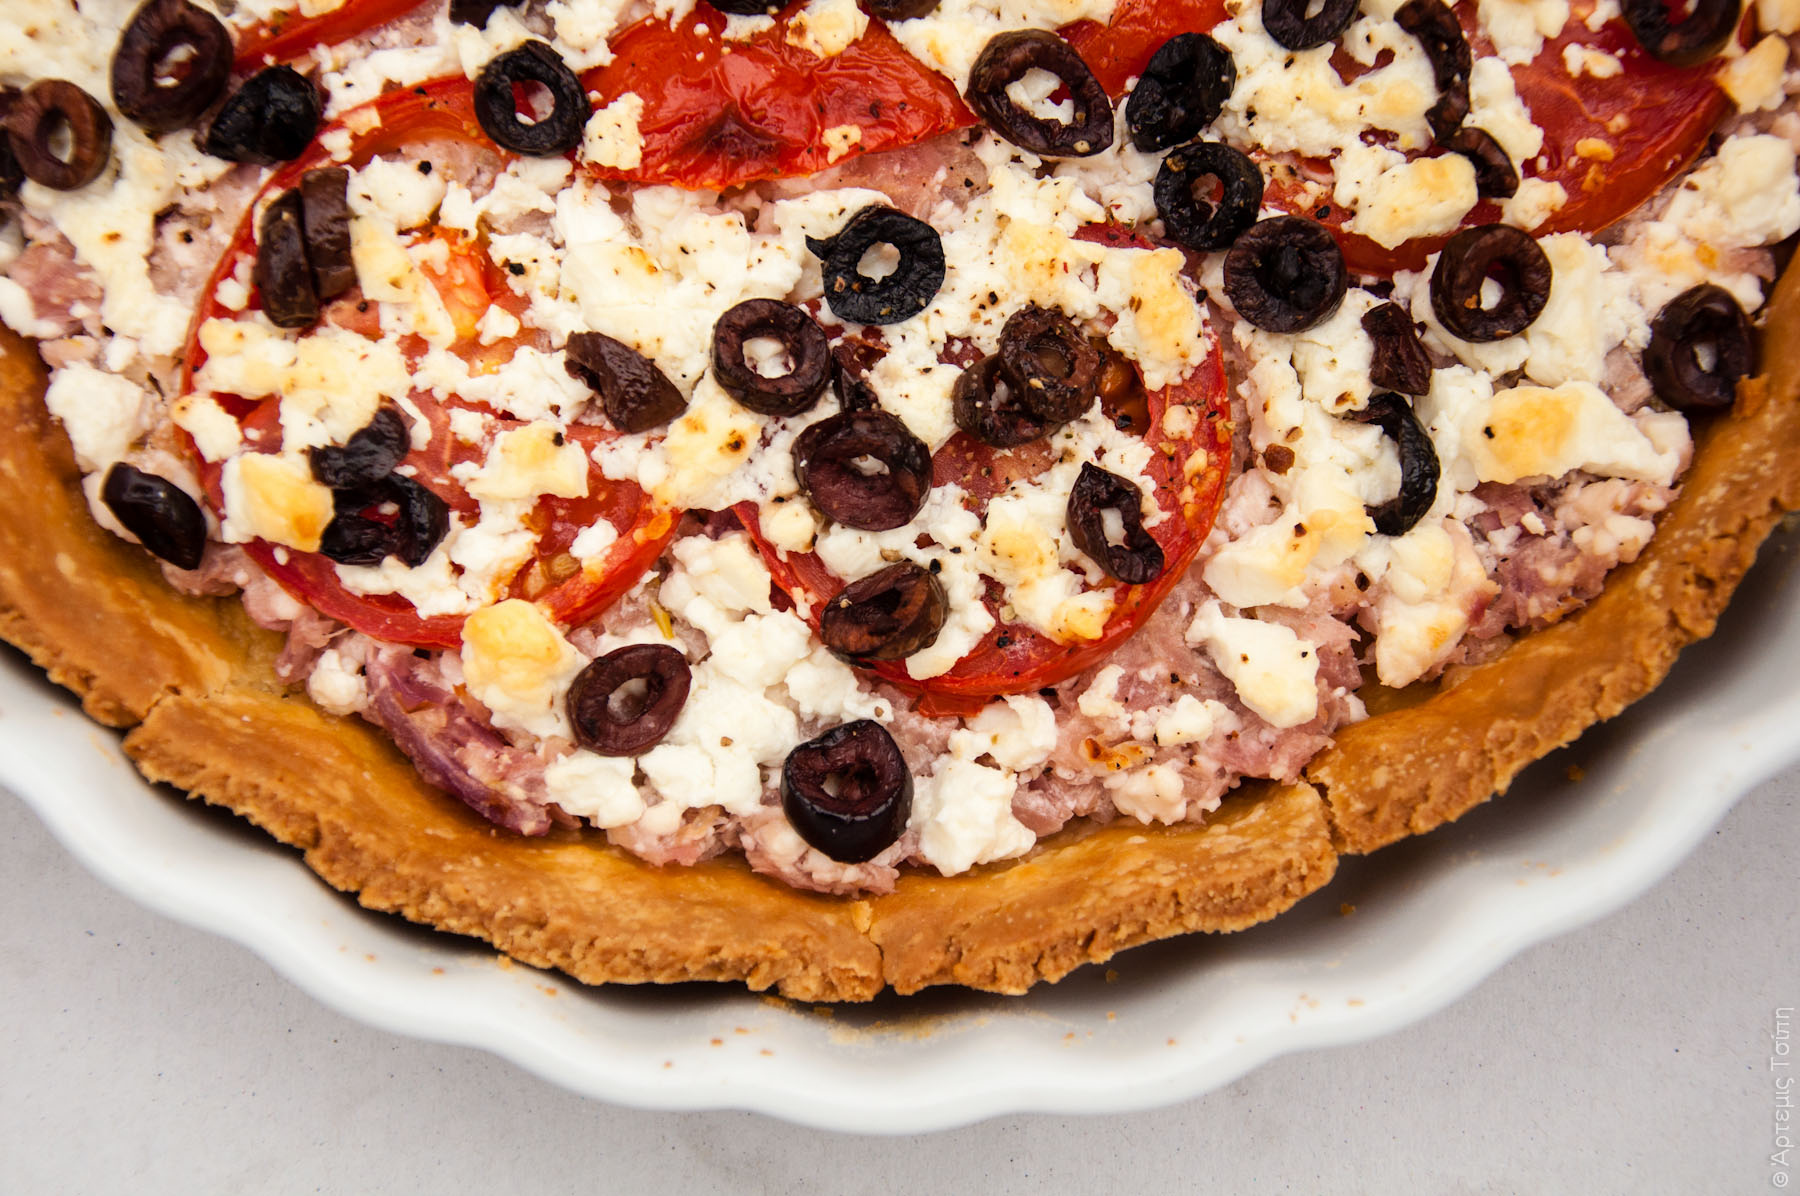 tart_goat cheese_tomato_olives_onions